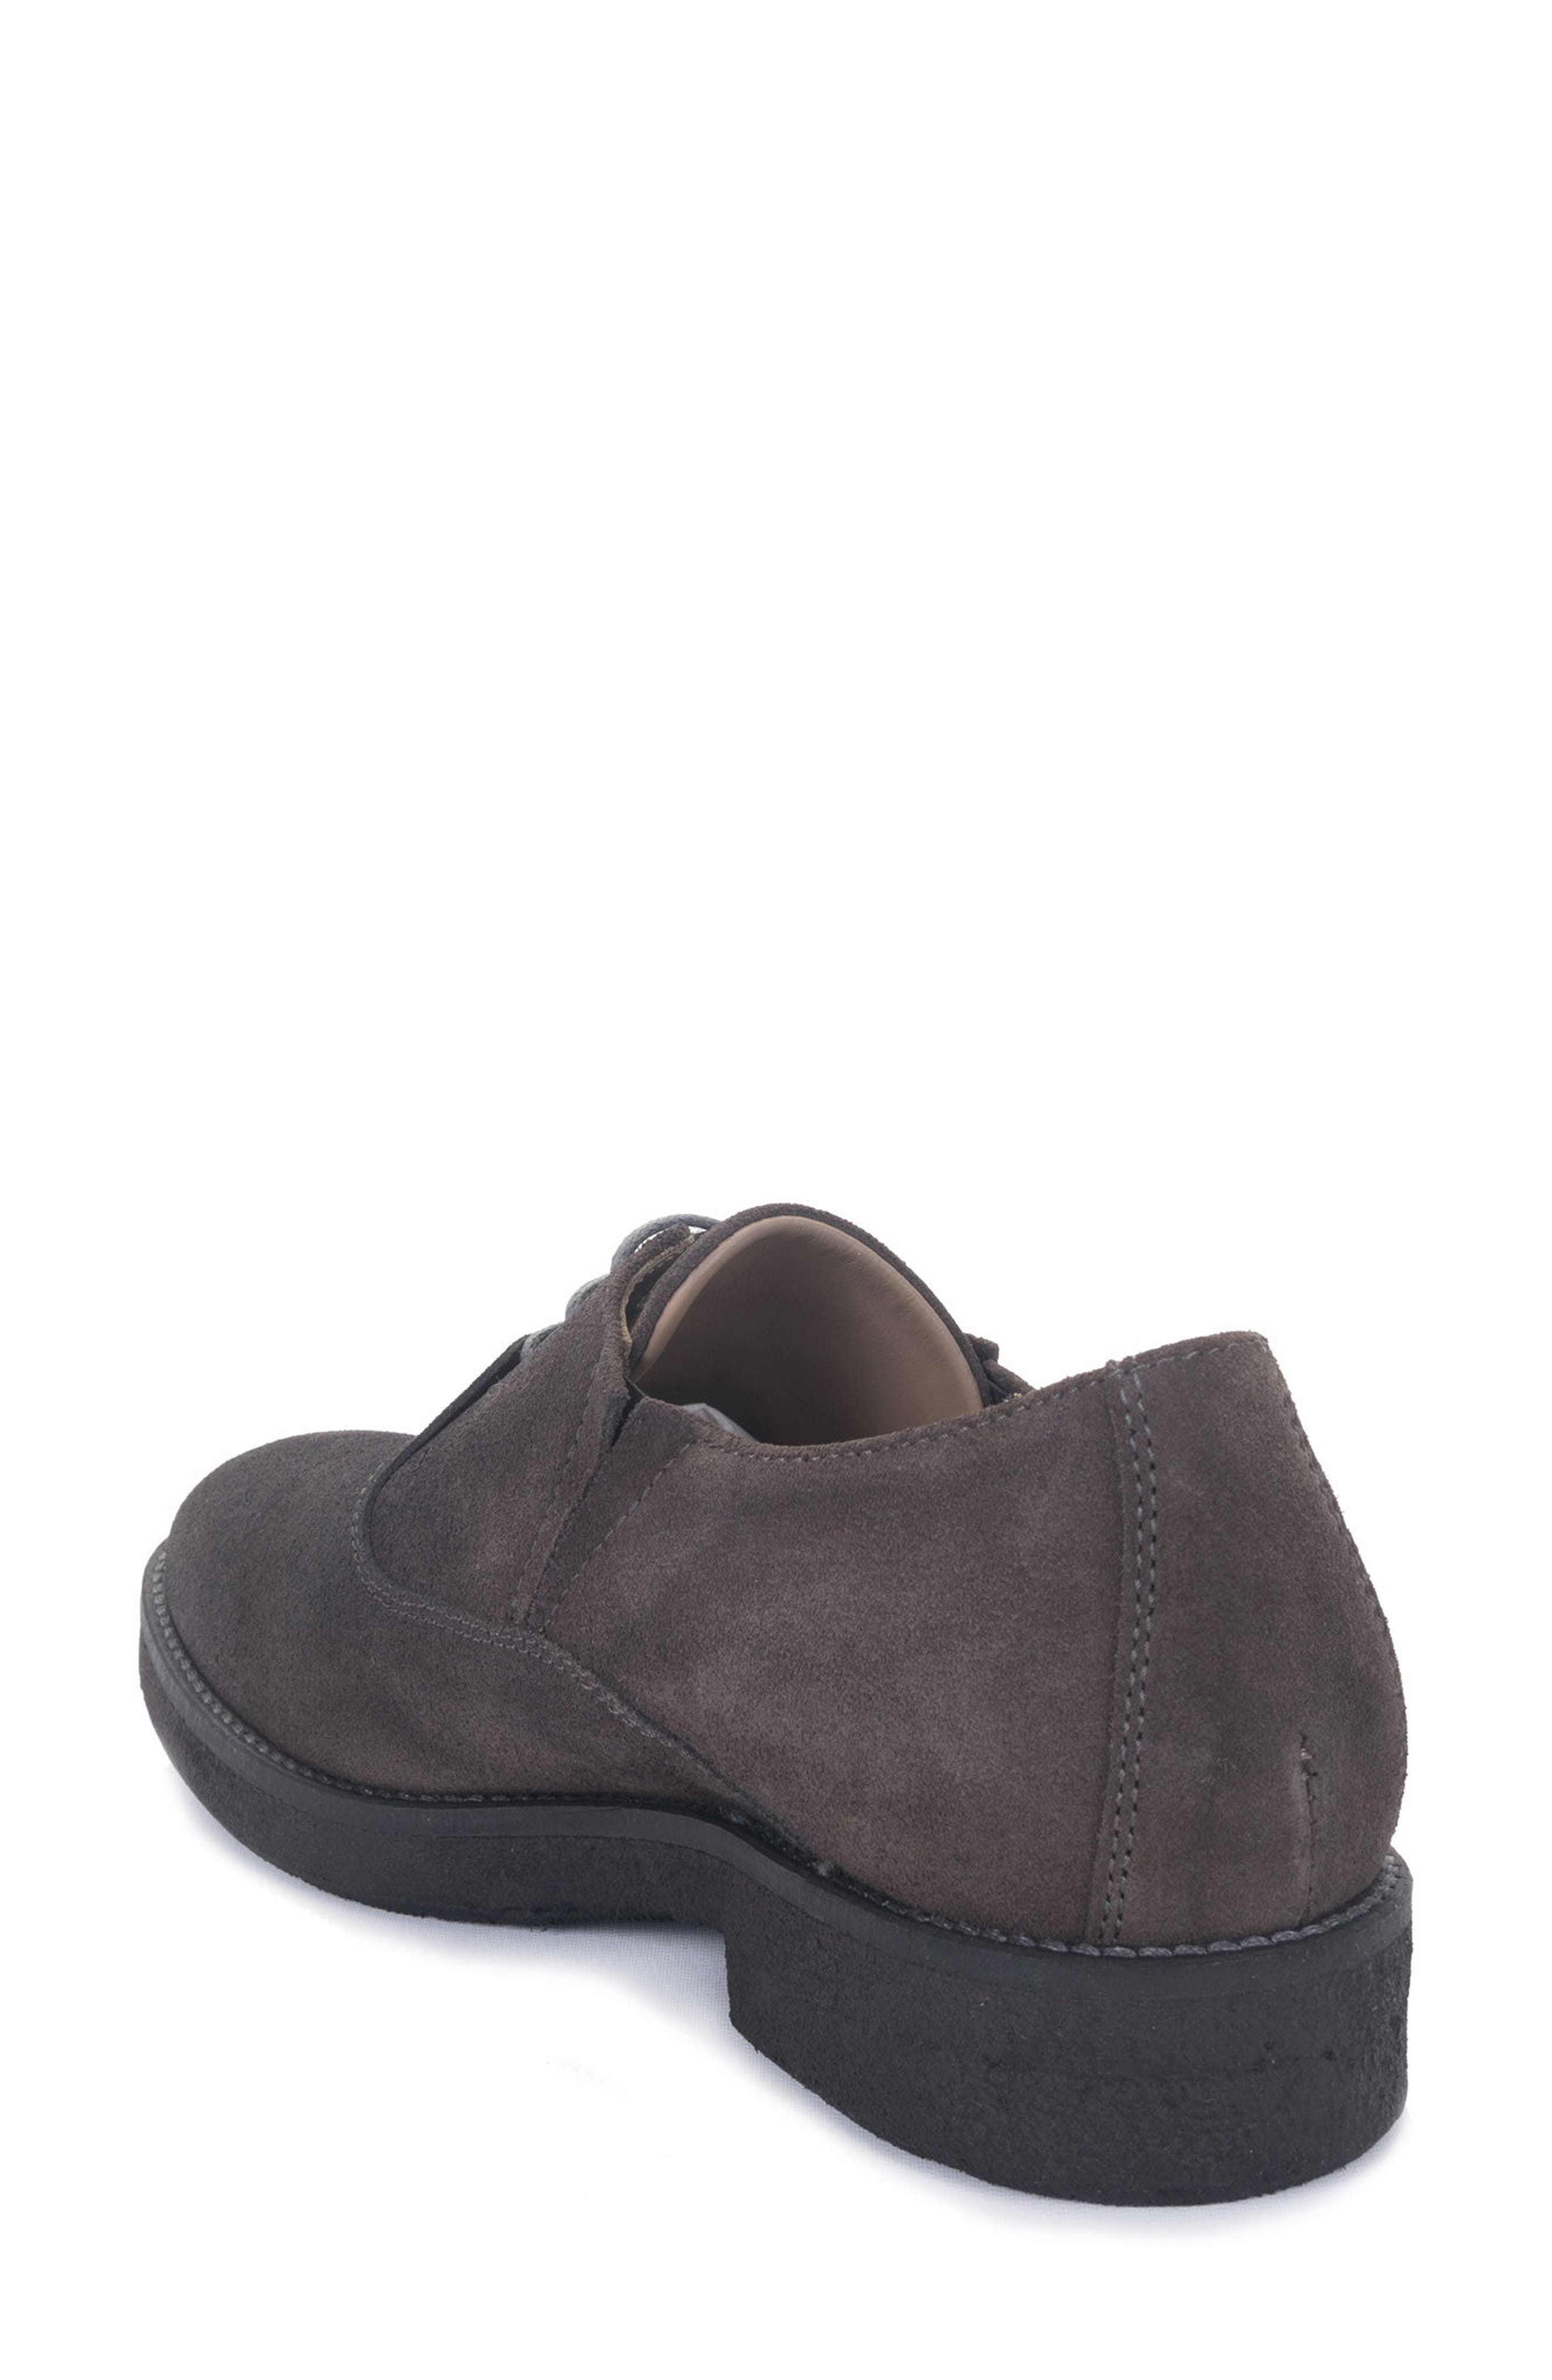 Molinella Water-Resistant Oxford,                             Alternate thumbnail 2, color,                             002